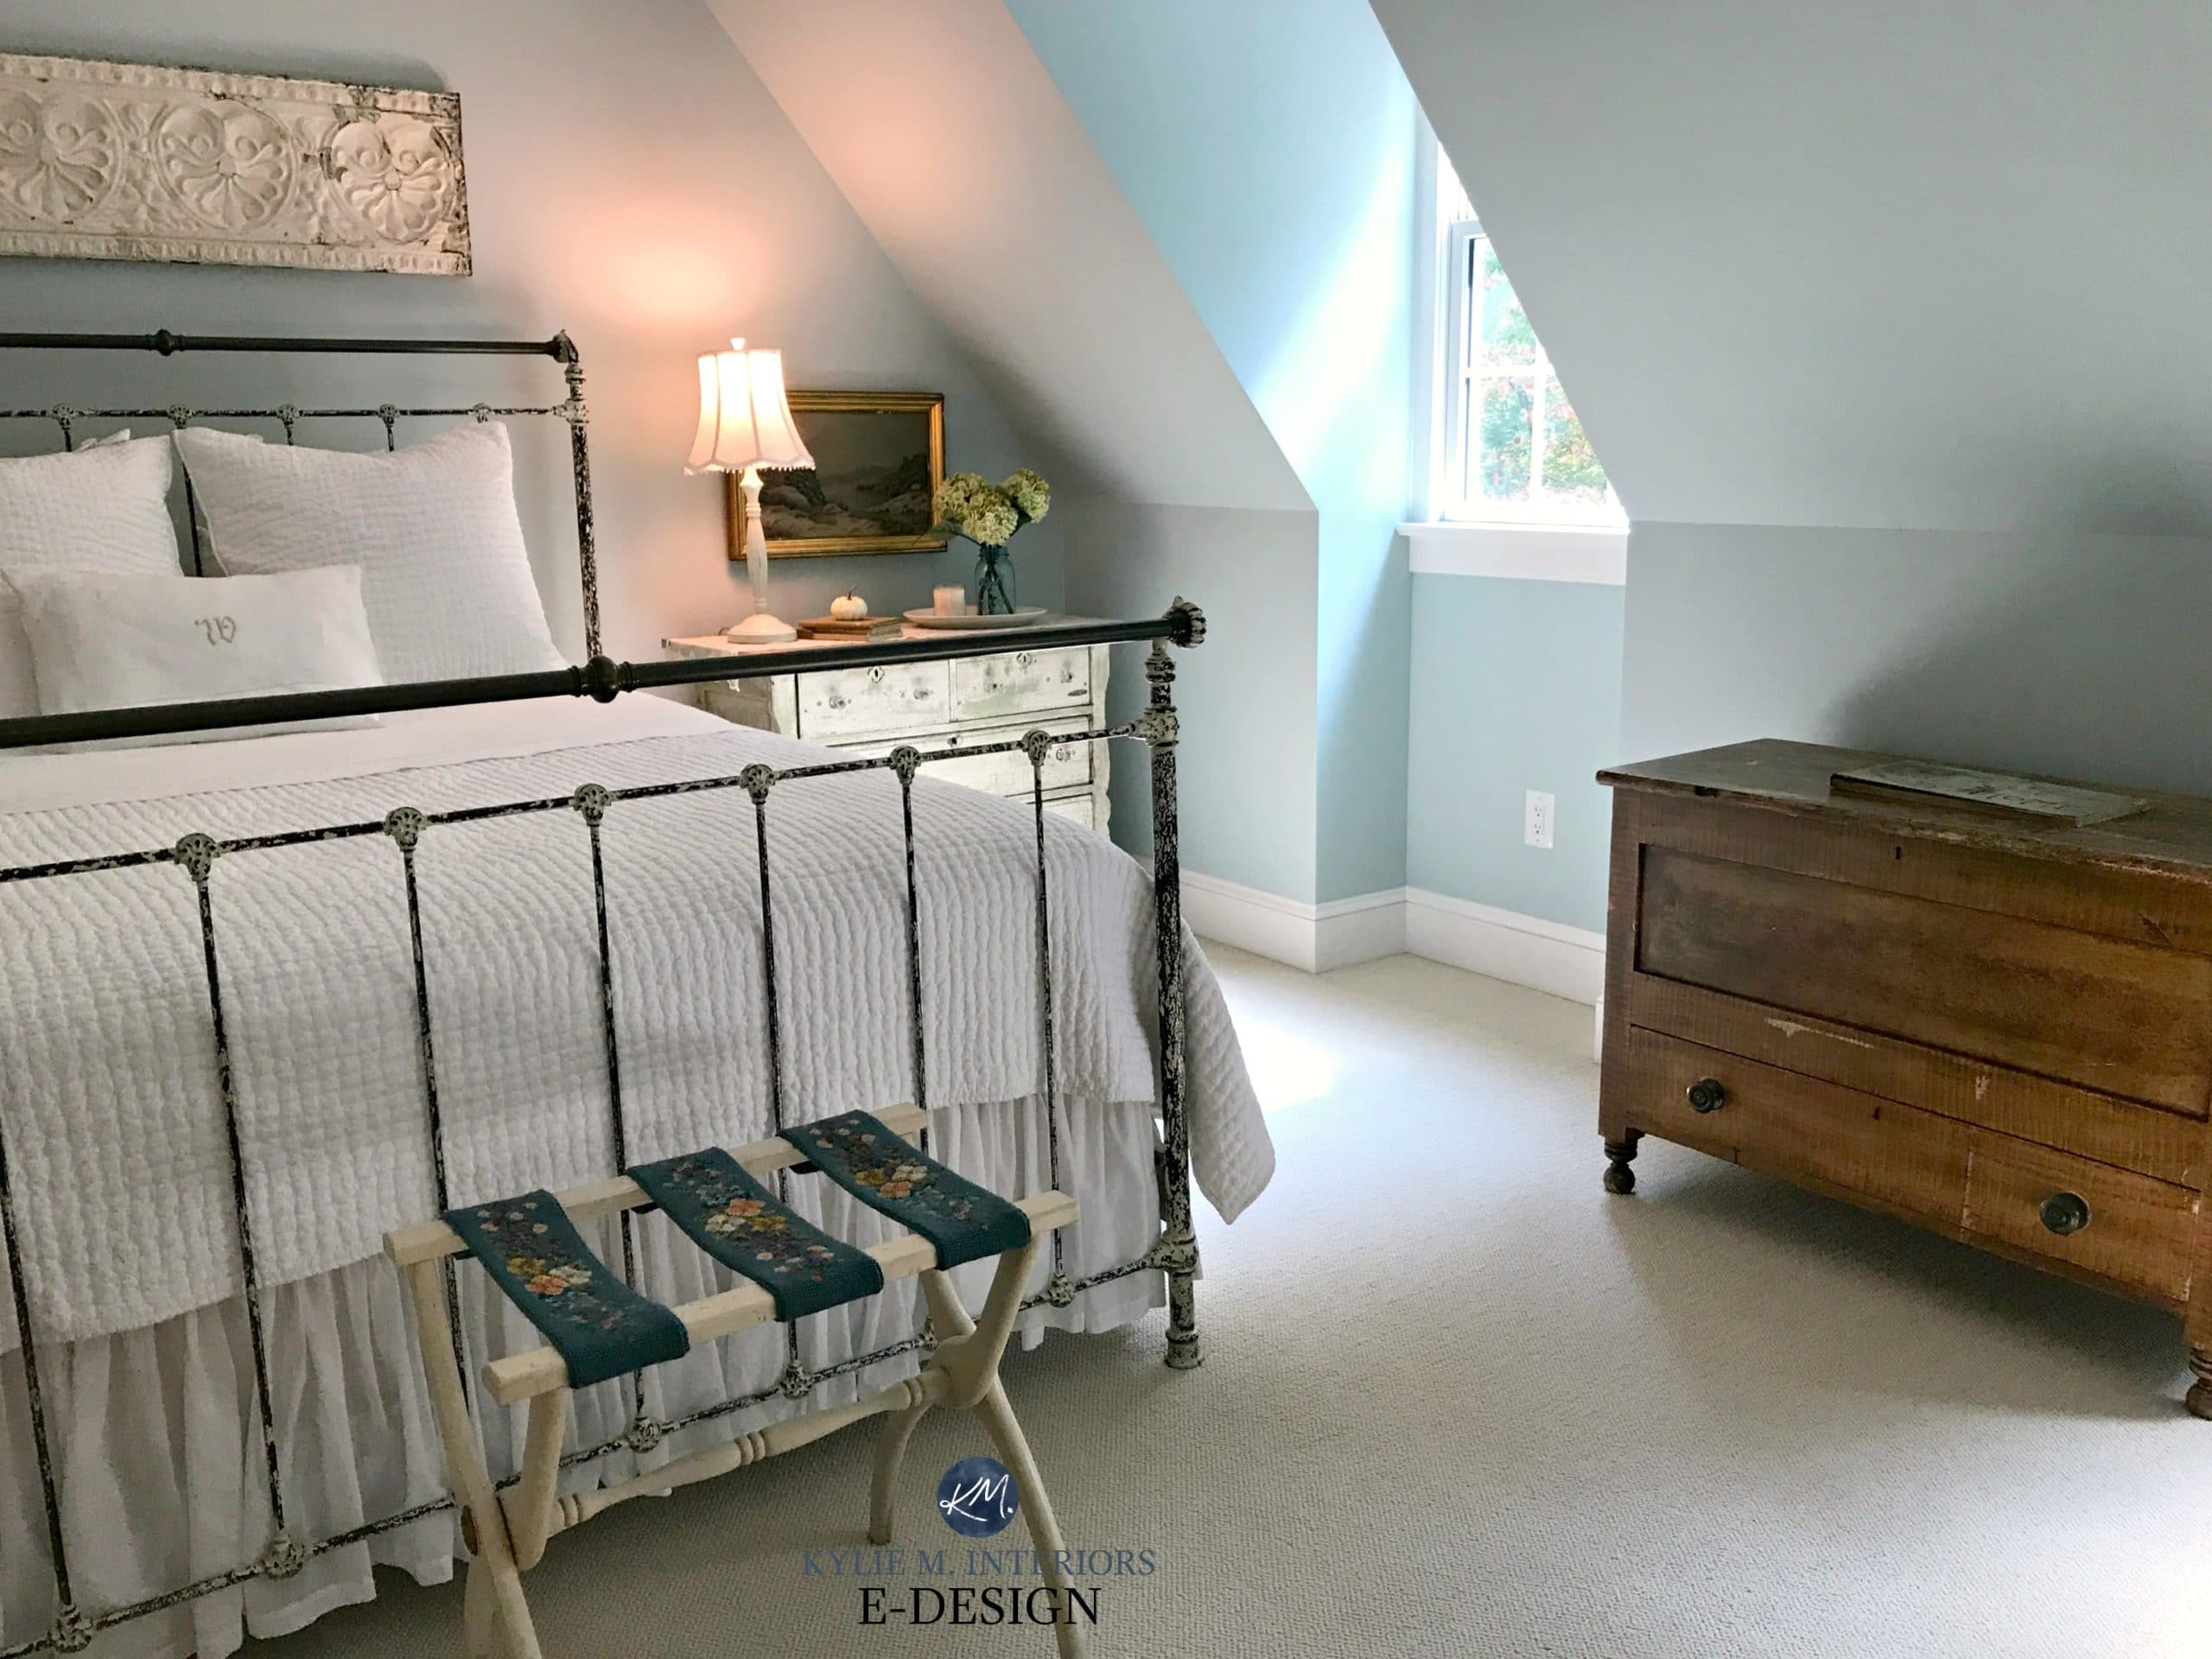 Guest Bedroom Benjamin Moore Woodlawn Blue With Farmhouse Country Bed And Decor Kylie M E Design Virtual Online Colour Consulting